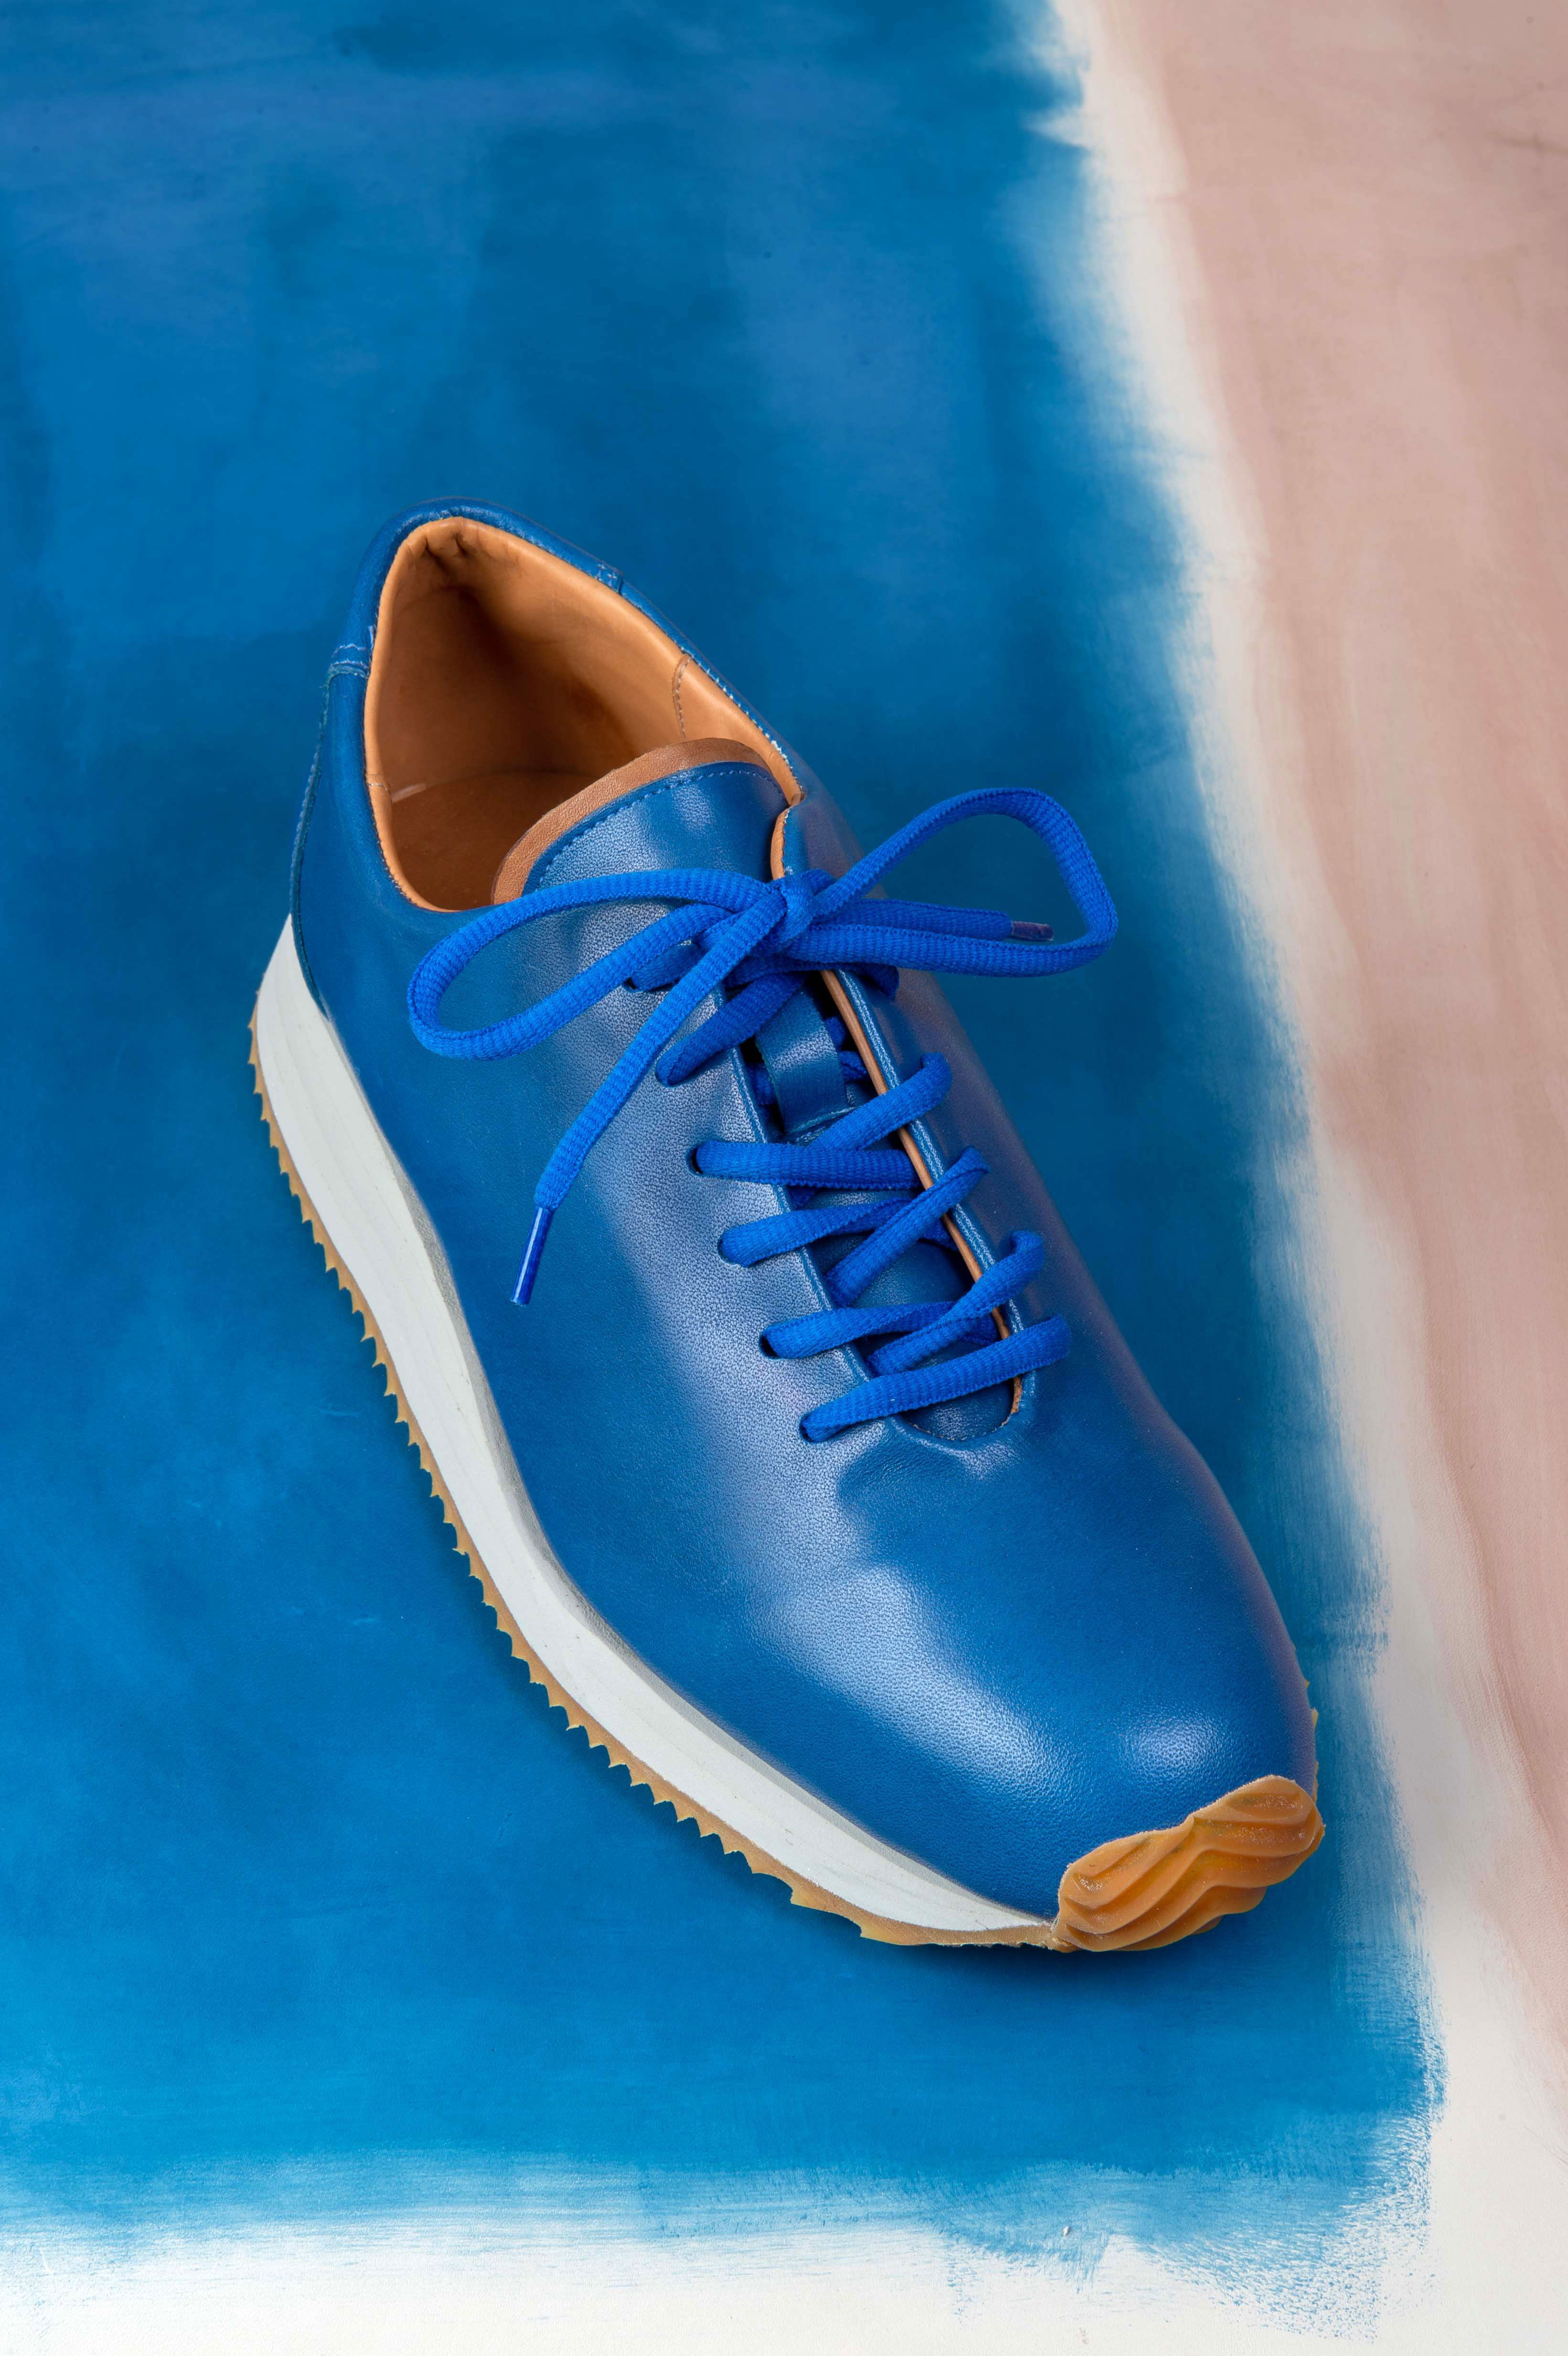 108 plainzigtrainer large sizes 4148 leather trainers